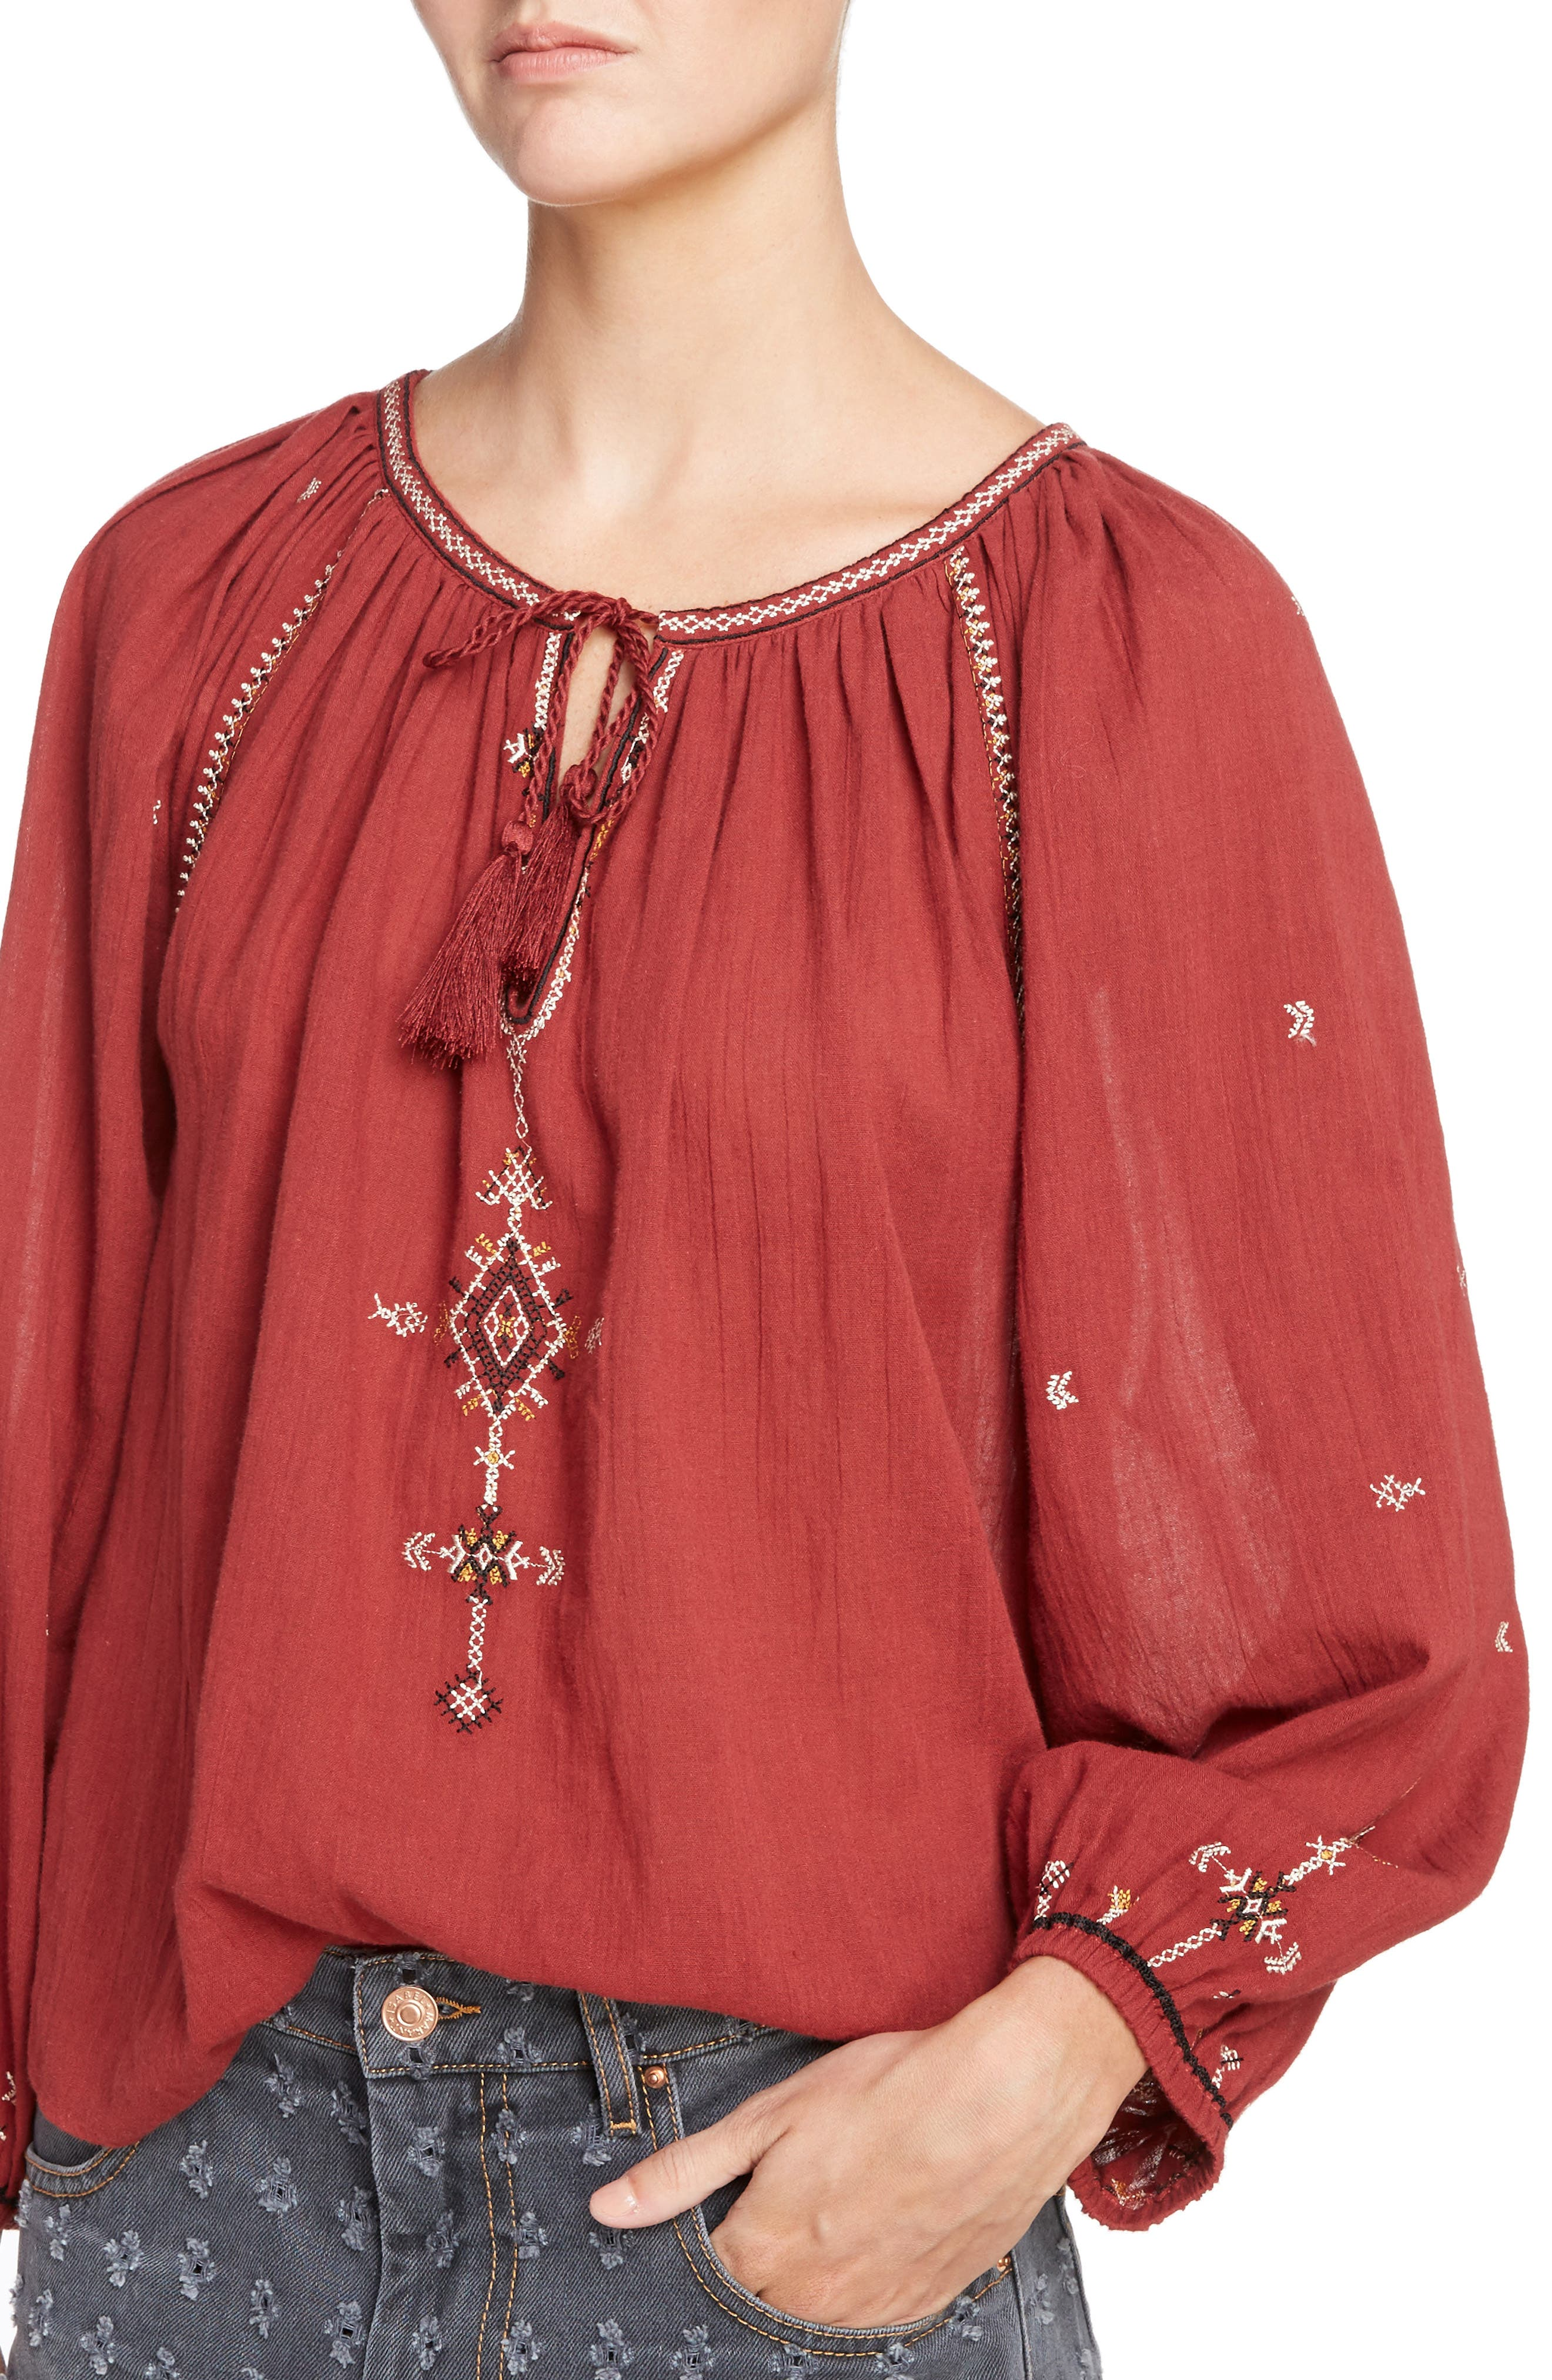 Isabel Marant Étoile Melina Embroidered Cotton Top,                             Alternate thumbnail 4, color,                             600